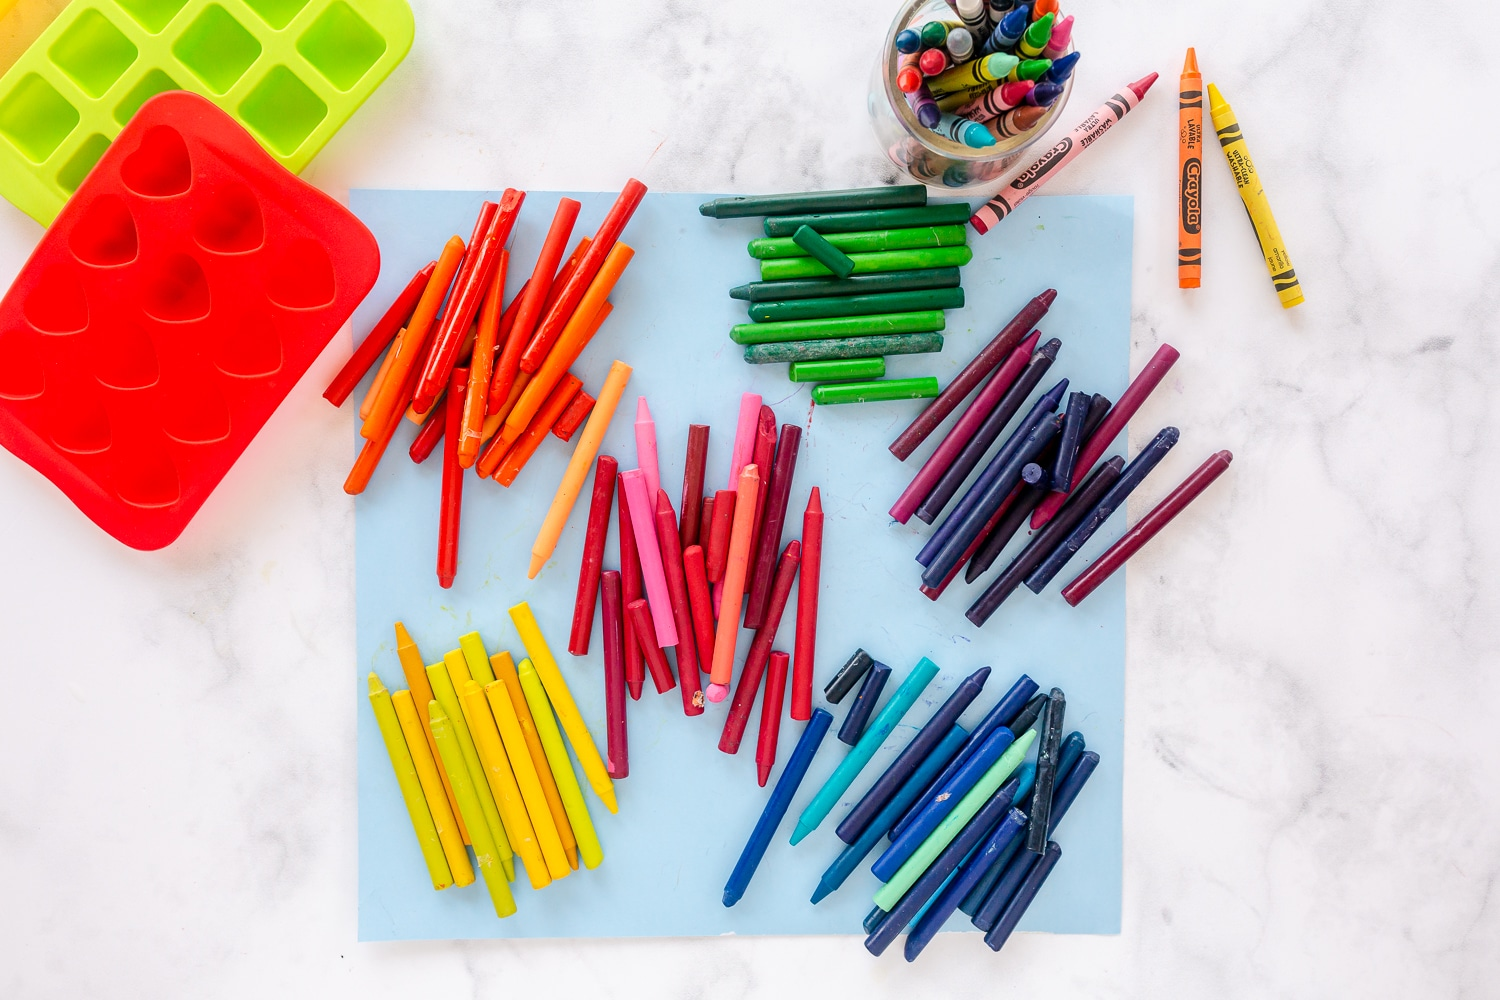 crayons with wrappers removed